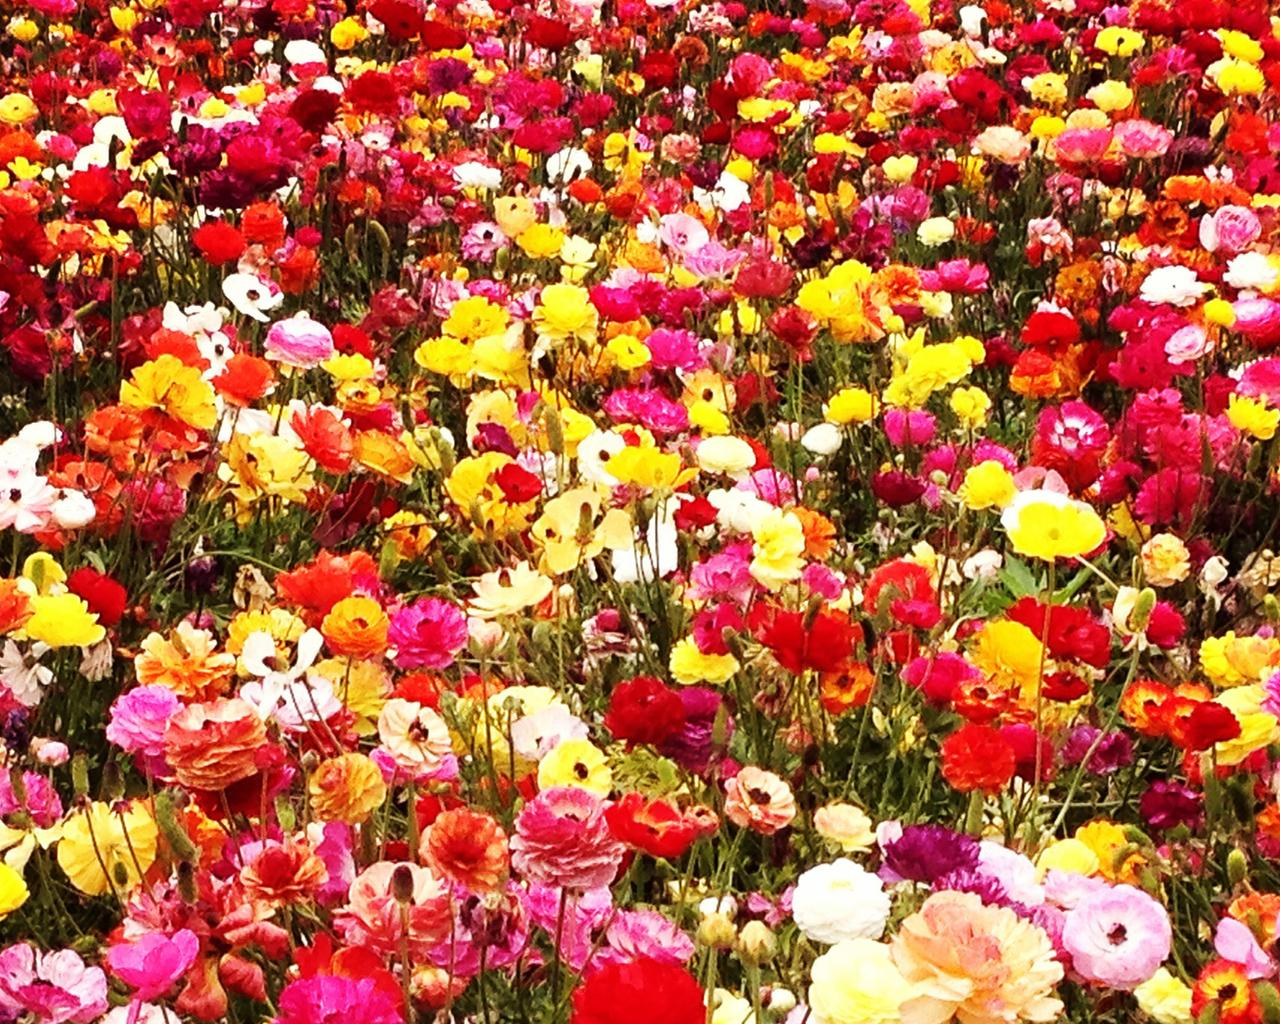 a field with colorful flowers wallpaper download 1280x1024